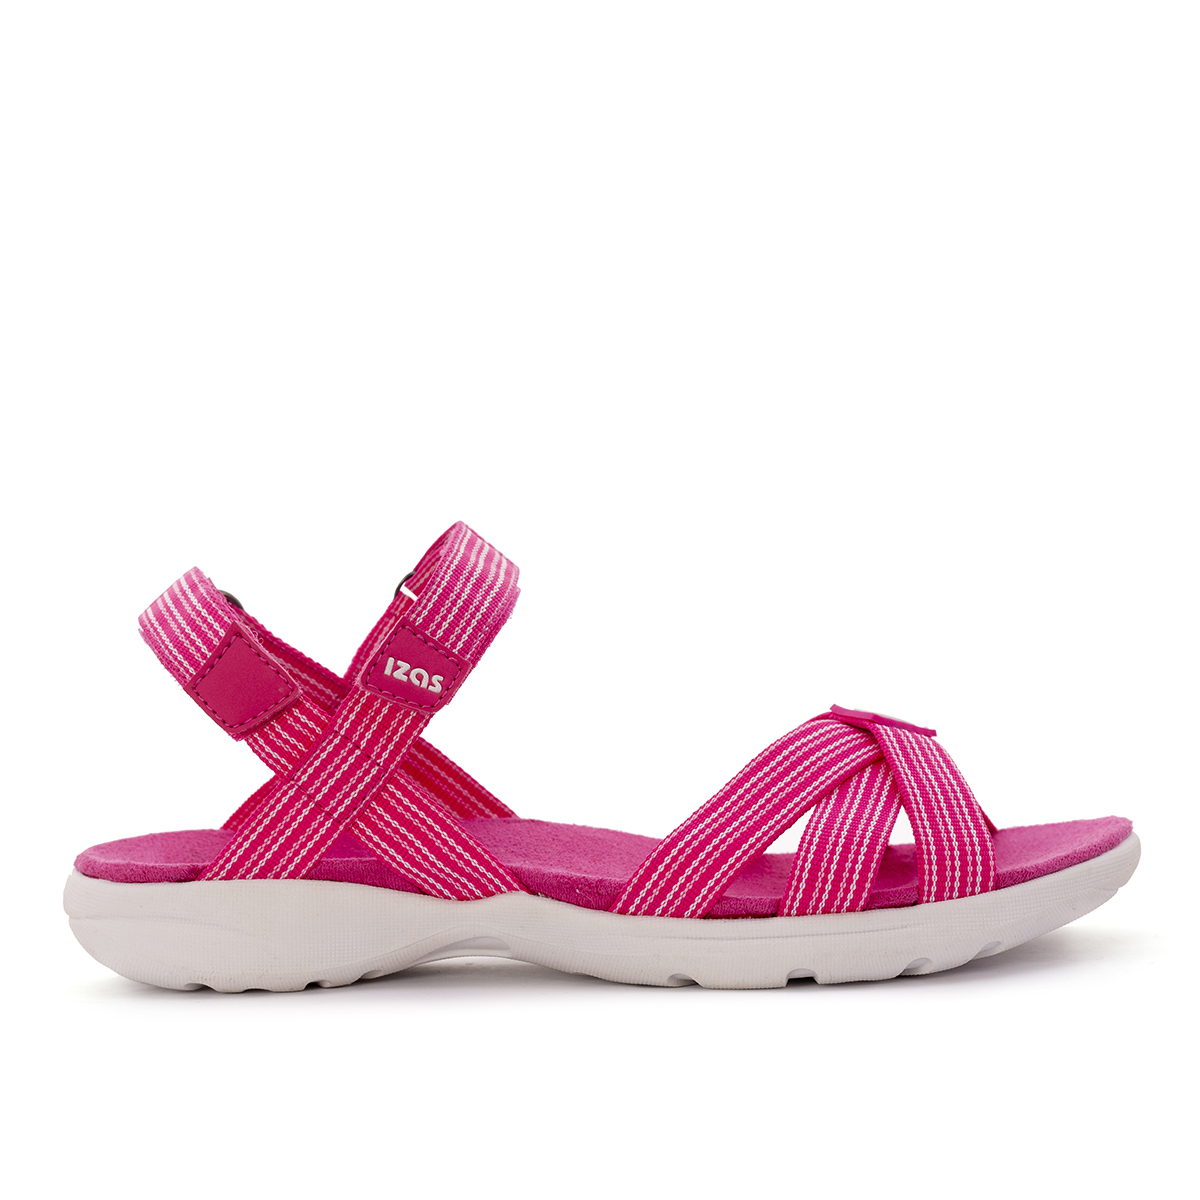 WOMAN'S EYRE HIKING SANDAL FUXIA